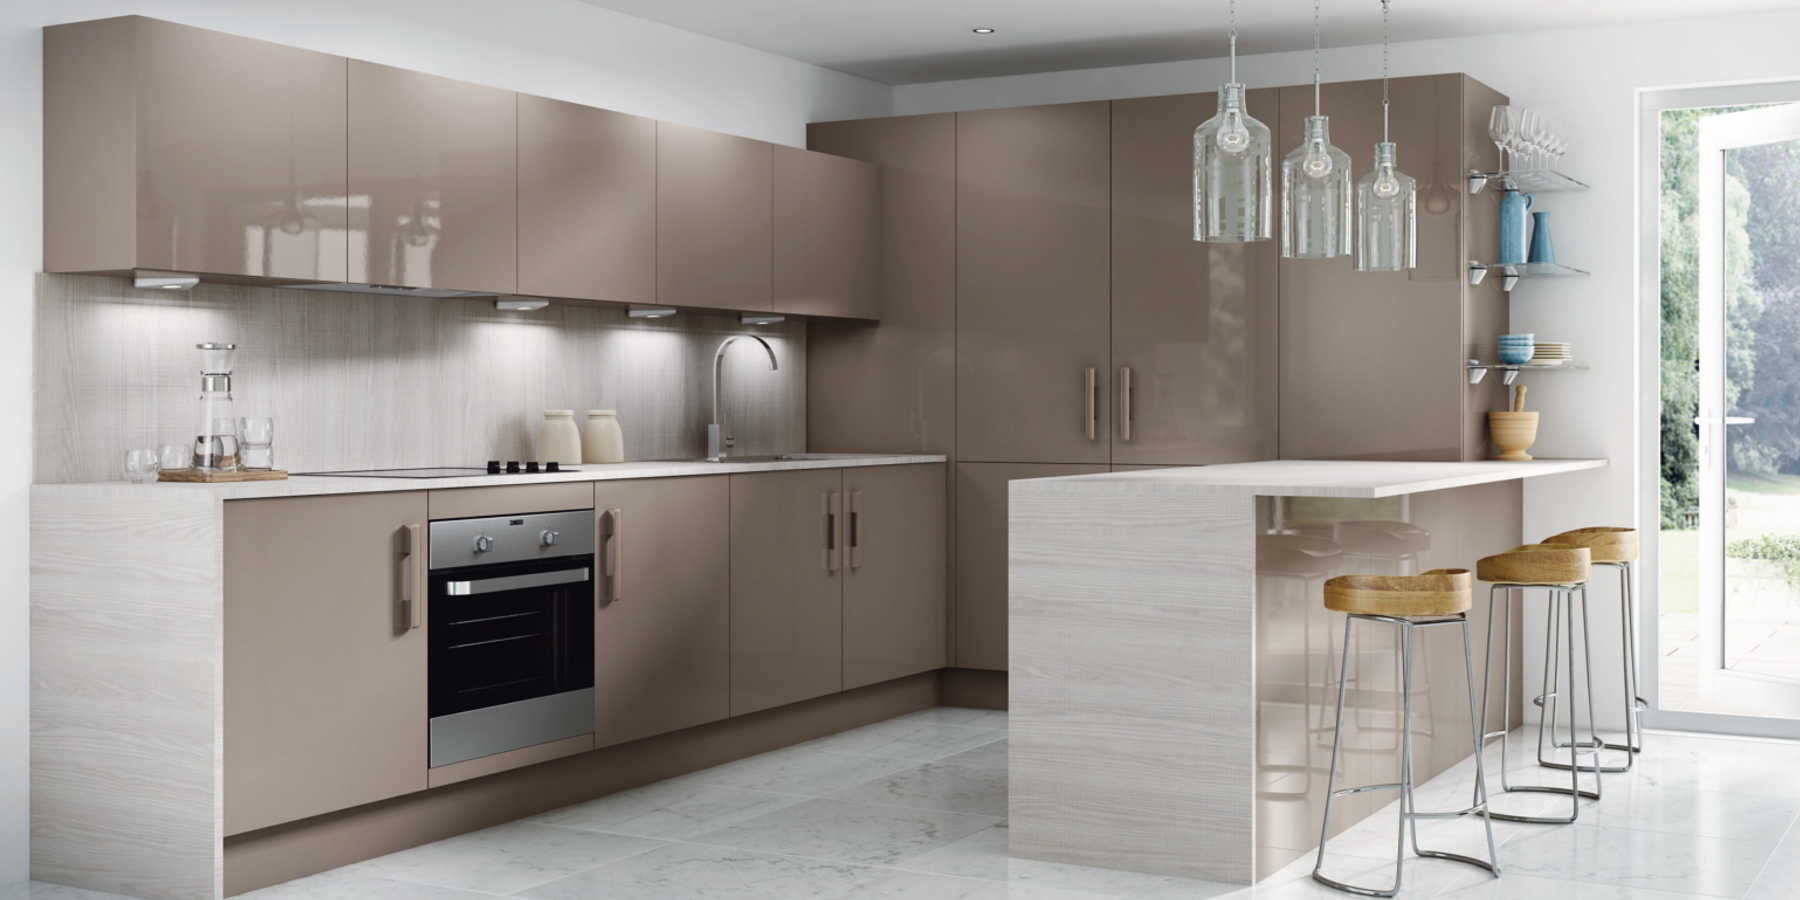 Woodbury gallery kitchens for Kitchens of woodbury